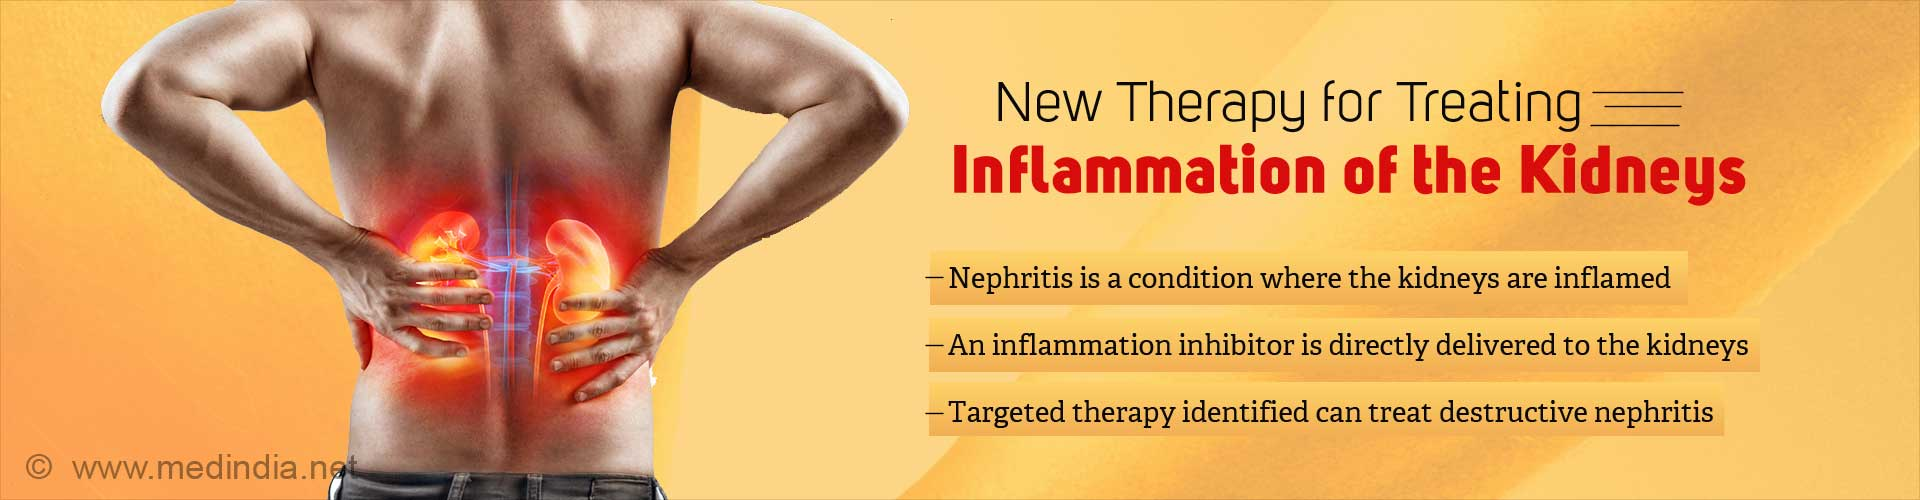 Targeted Therapy for Inflammation of the Kidneys Identified